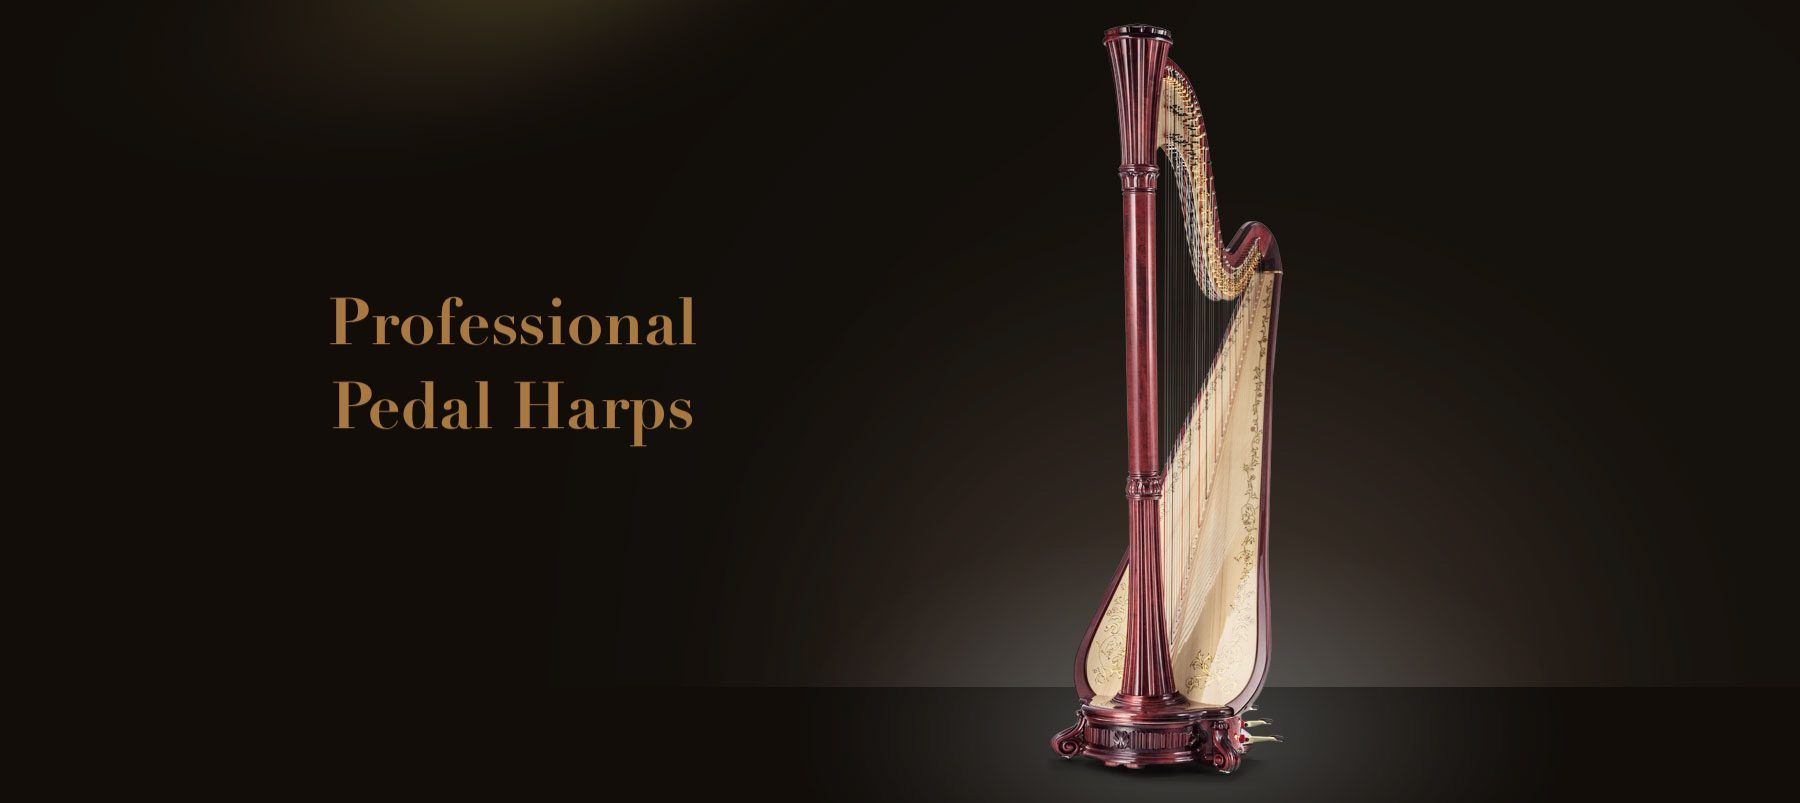 Professional Pedal Harps